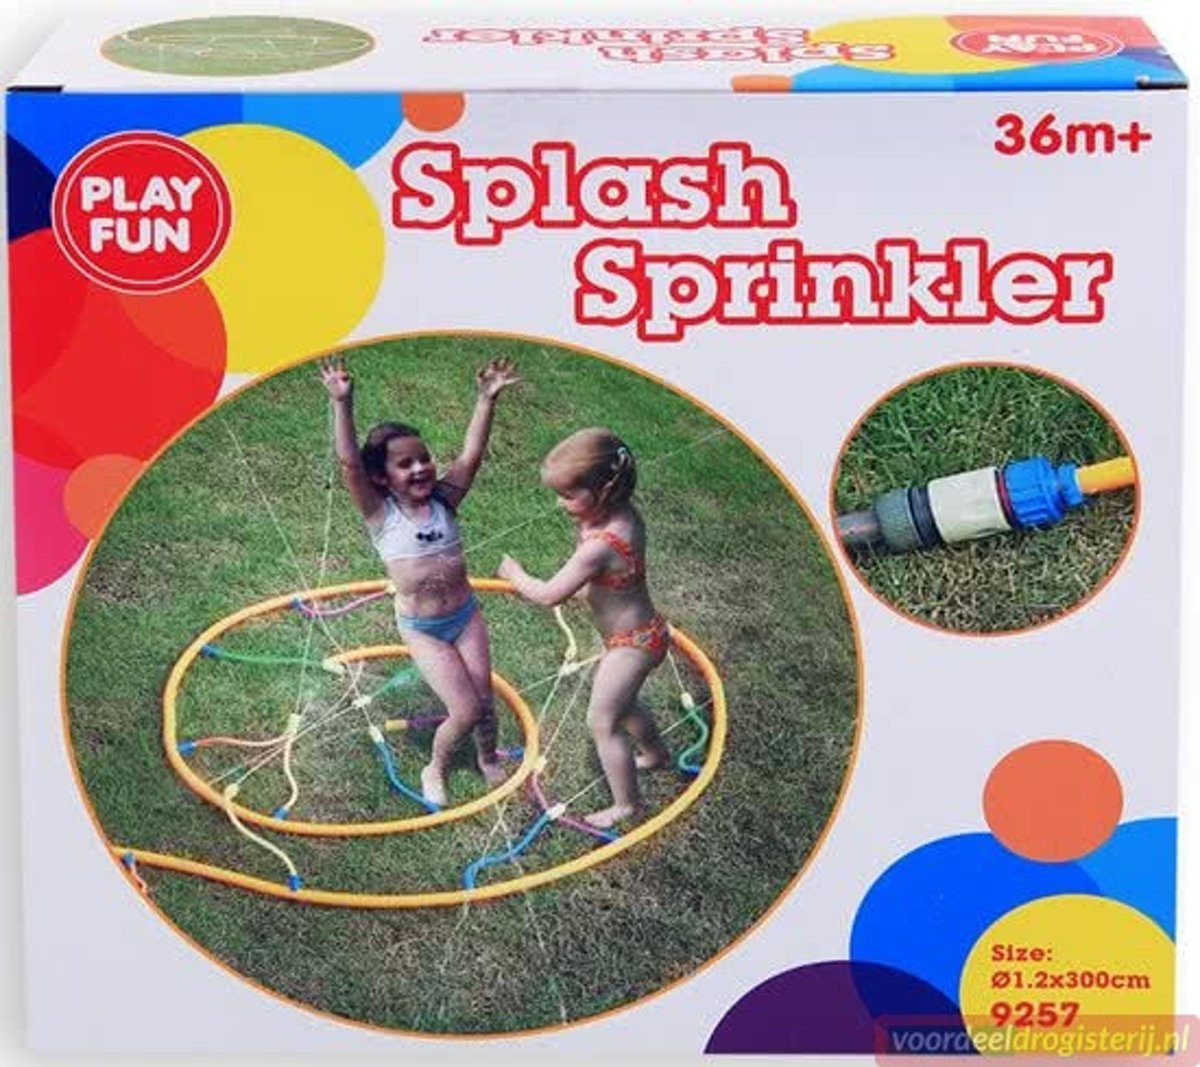 Playfun | Splash Water Sprinkler 3 meter ! spetter sproeier